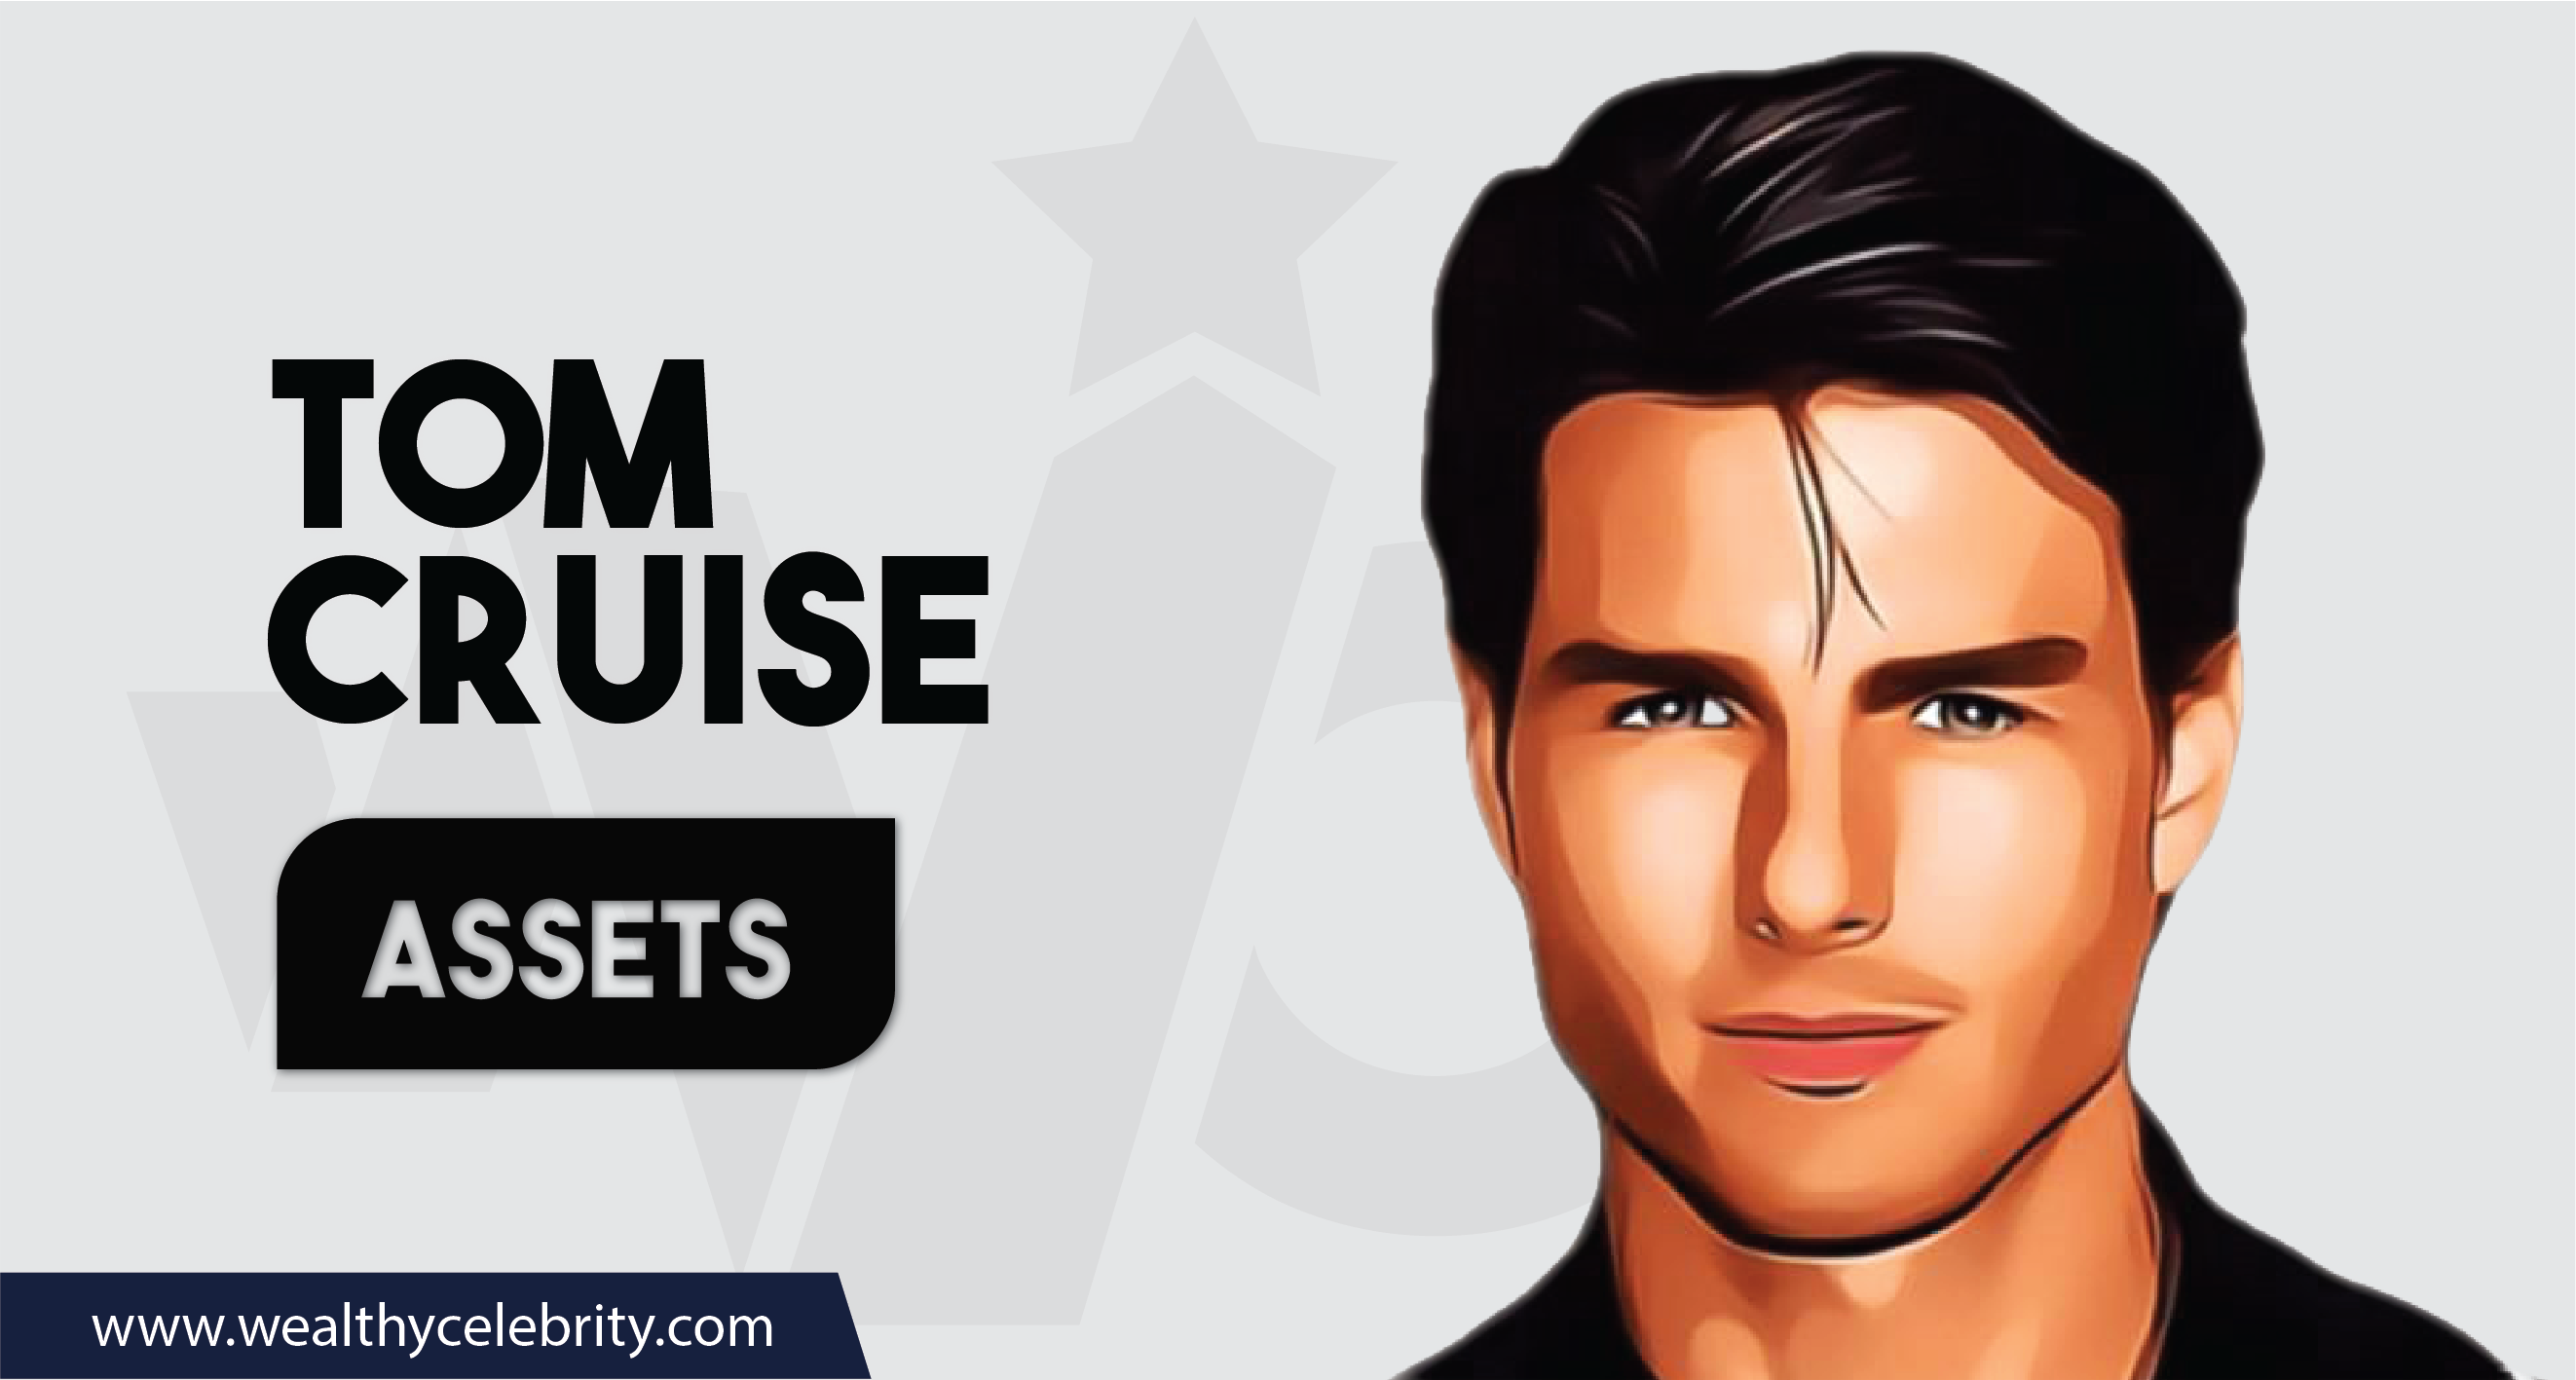 Tom Cruise_Assets